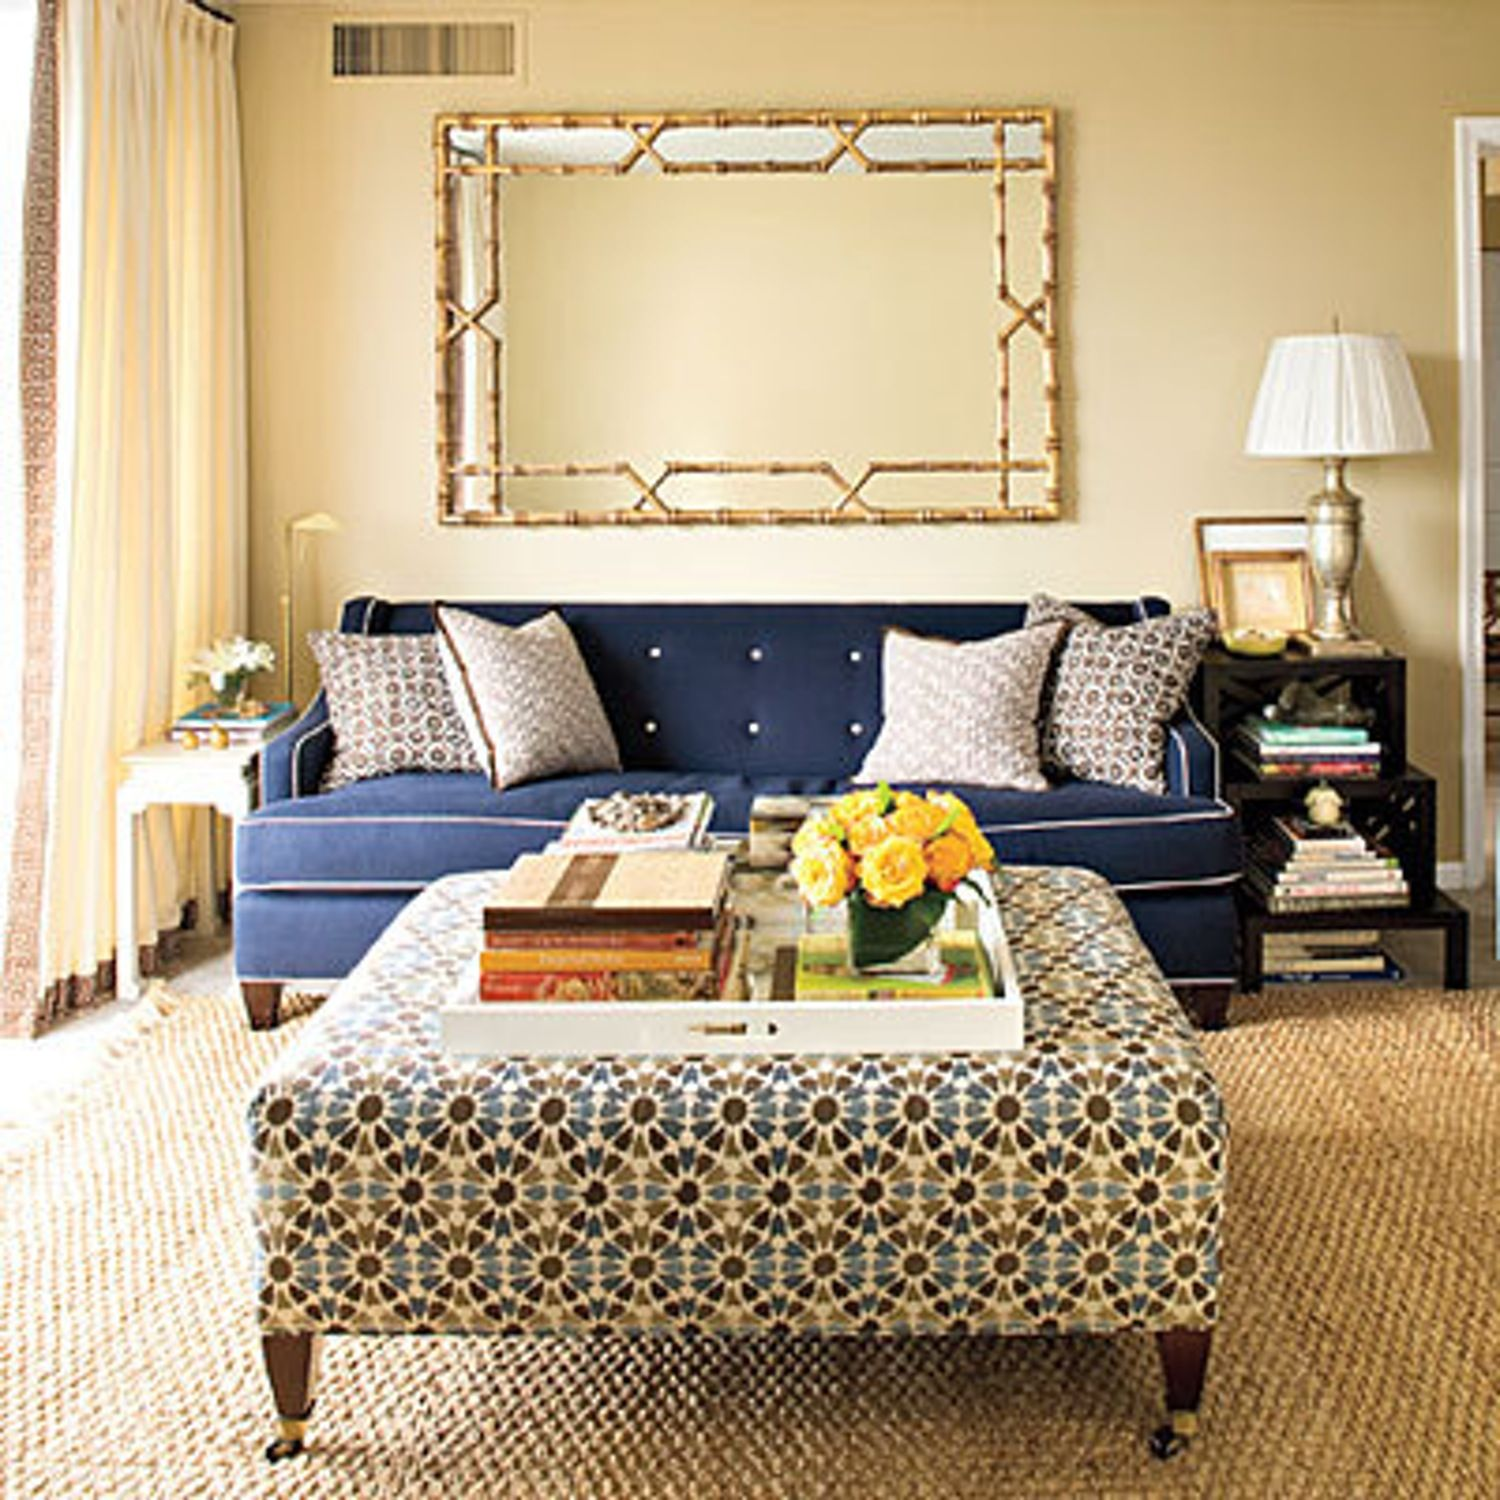 images about bedroom looks on pinterest diy tufted headboard